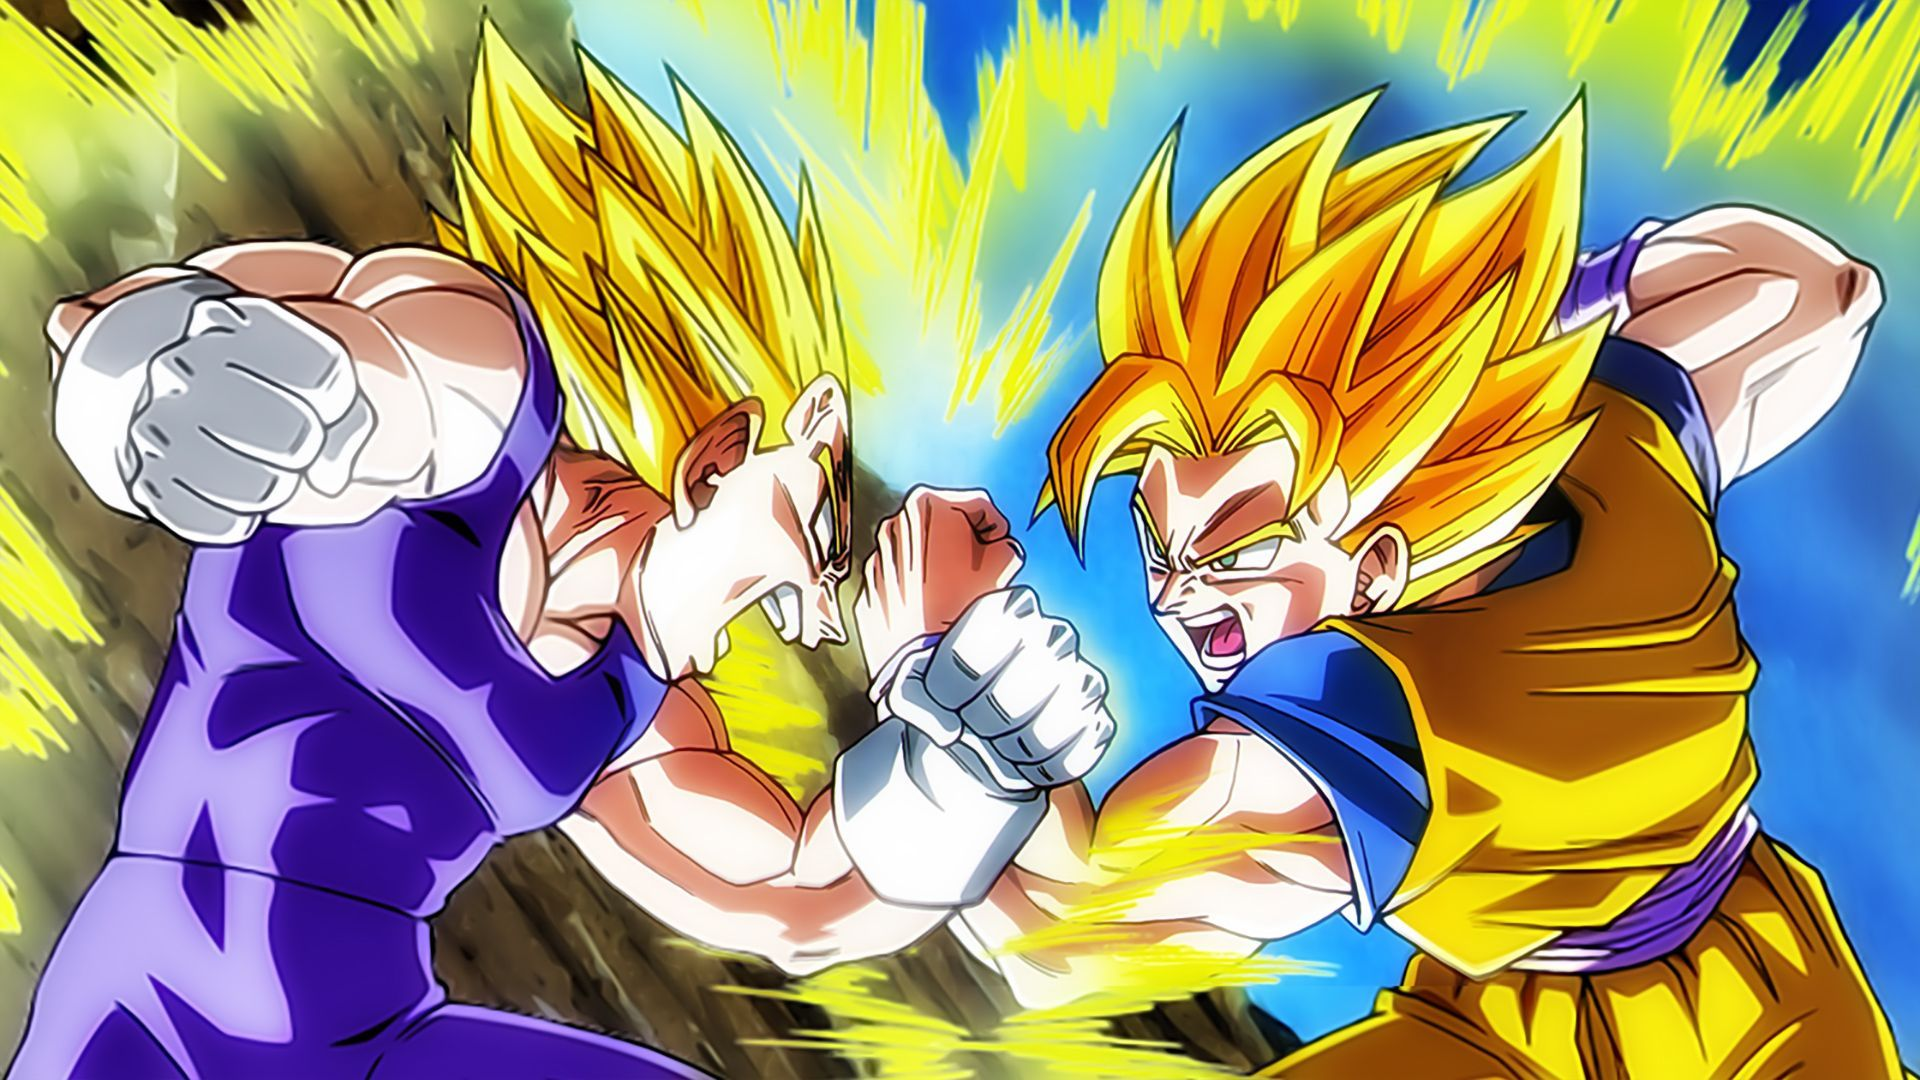 Goku Vs Vegeta Wallpapers Top Free Goku Vs Vegeta Backgrounds Wallpaperaccess